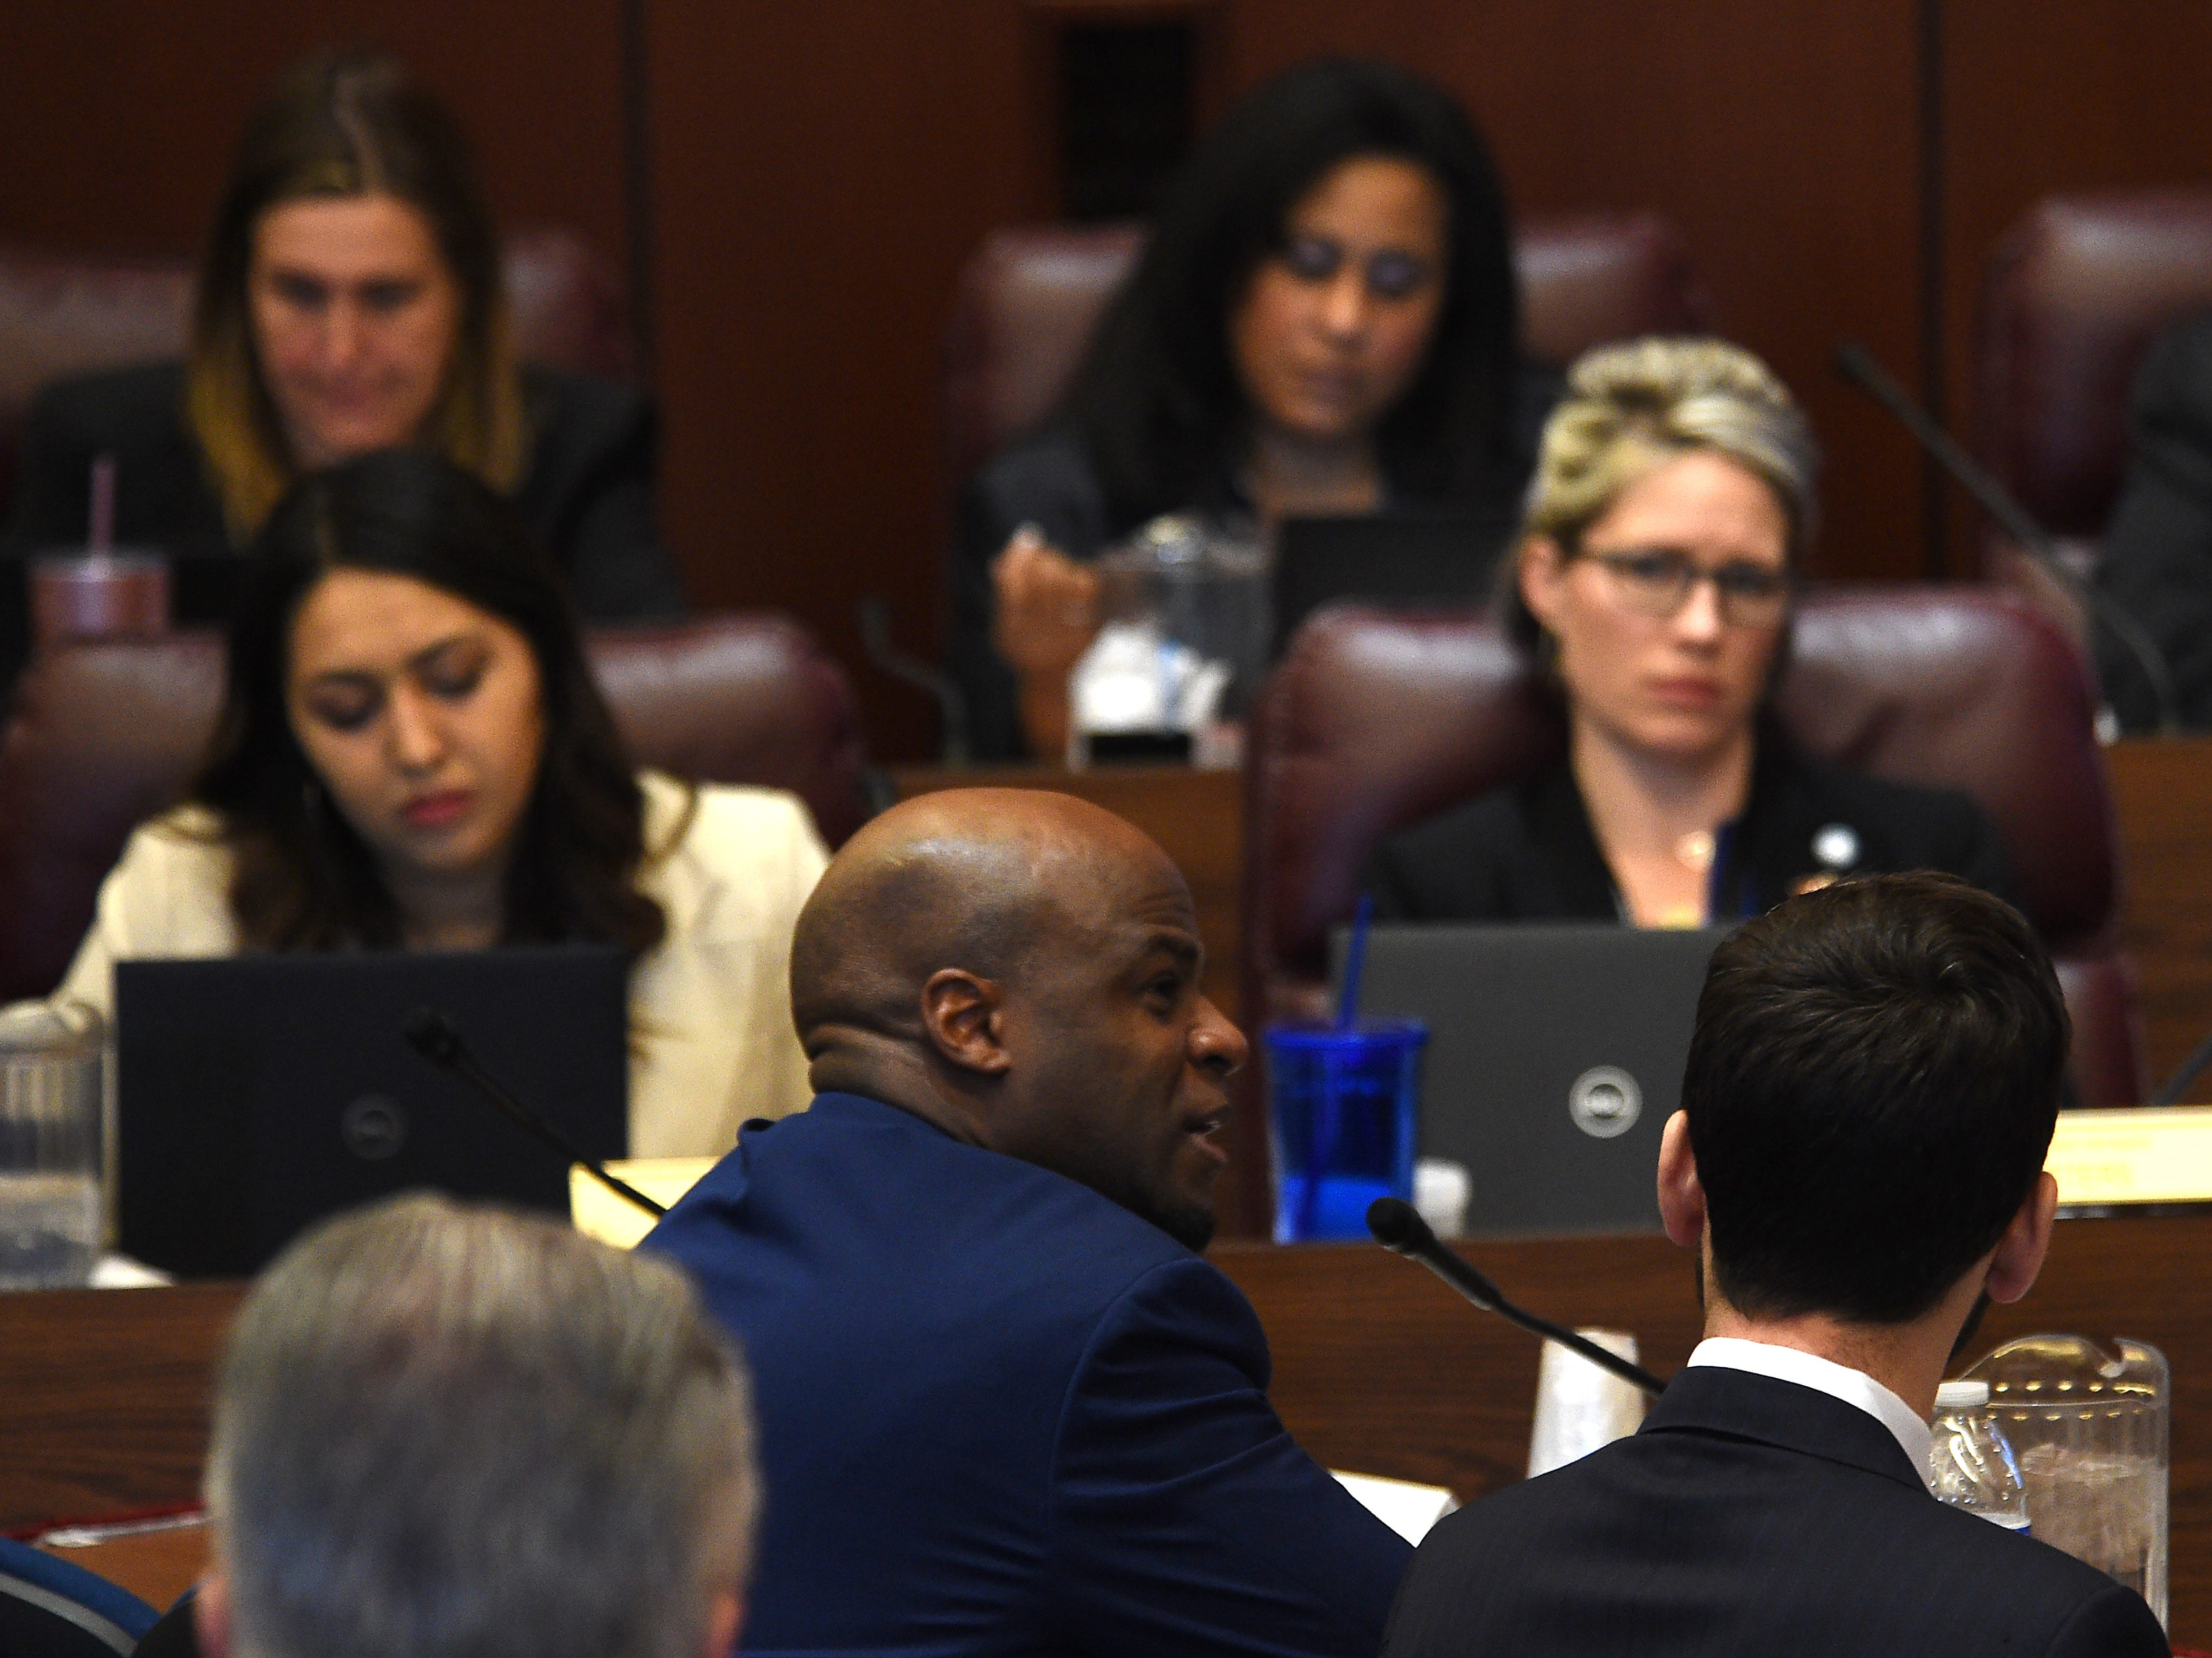 State Senate Majority Leader Kelvin Atkinson, middle, testifies during a hearing for Senate Bill 143 at the Nevada Legislature Building in Carson City on Feb. 12, 2019.